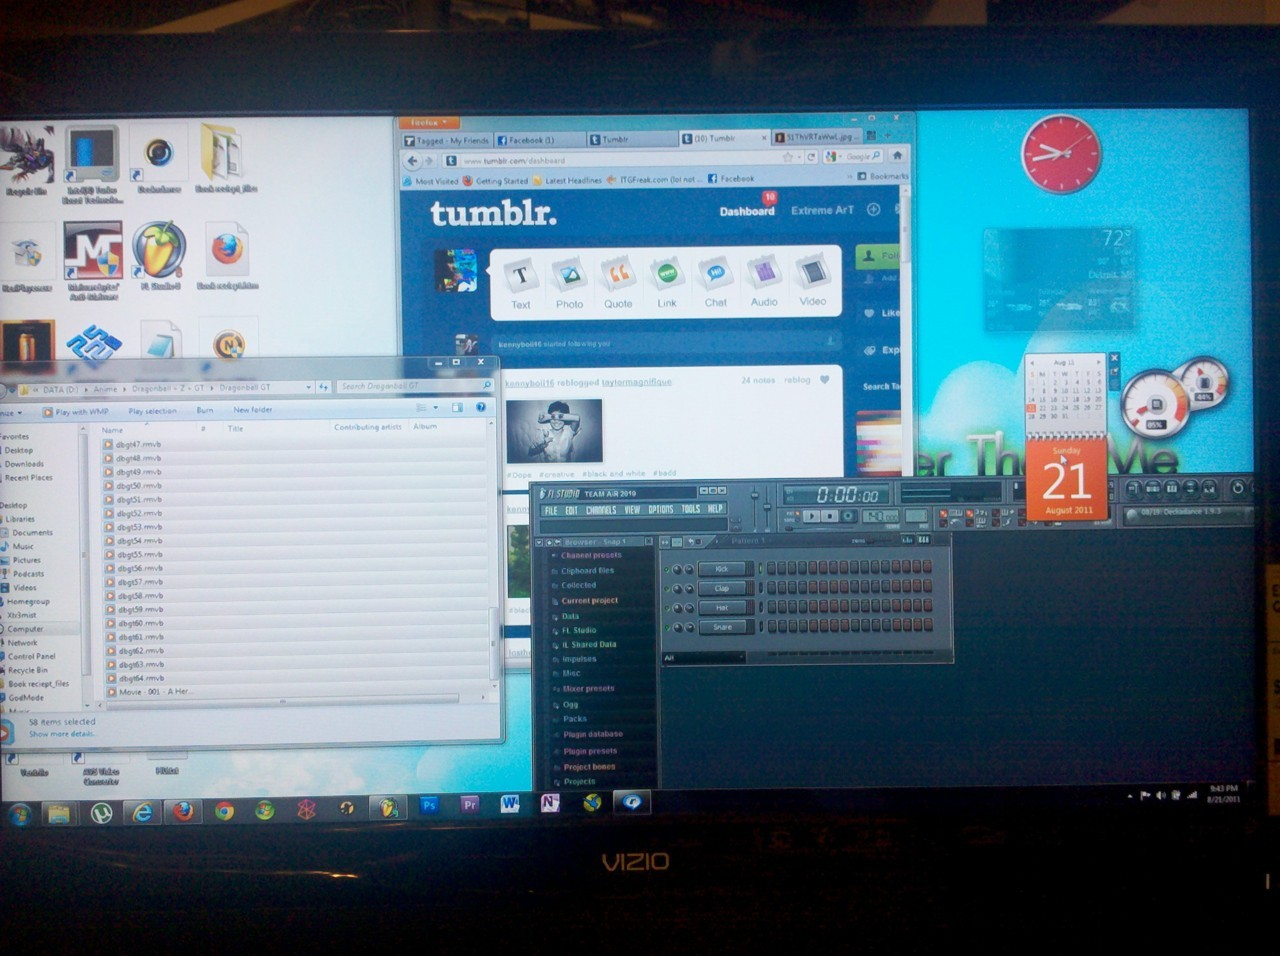 Computing on the big screen! Hell yea! In my geek mode 8D